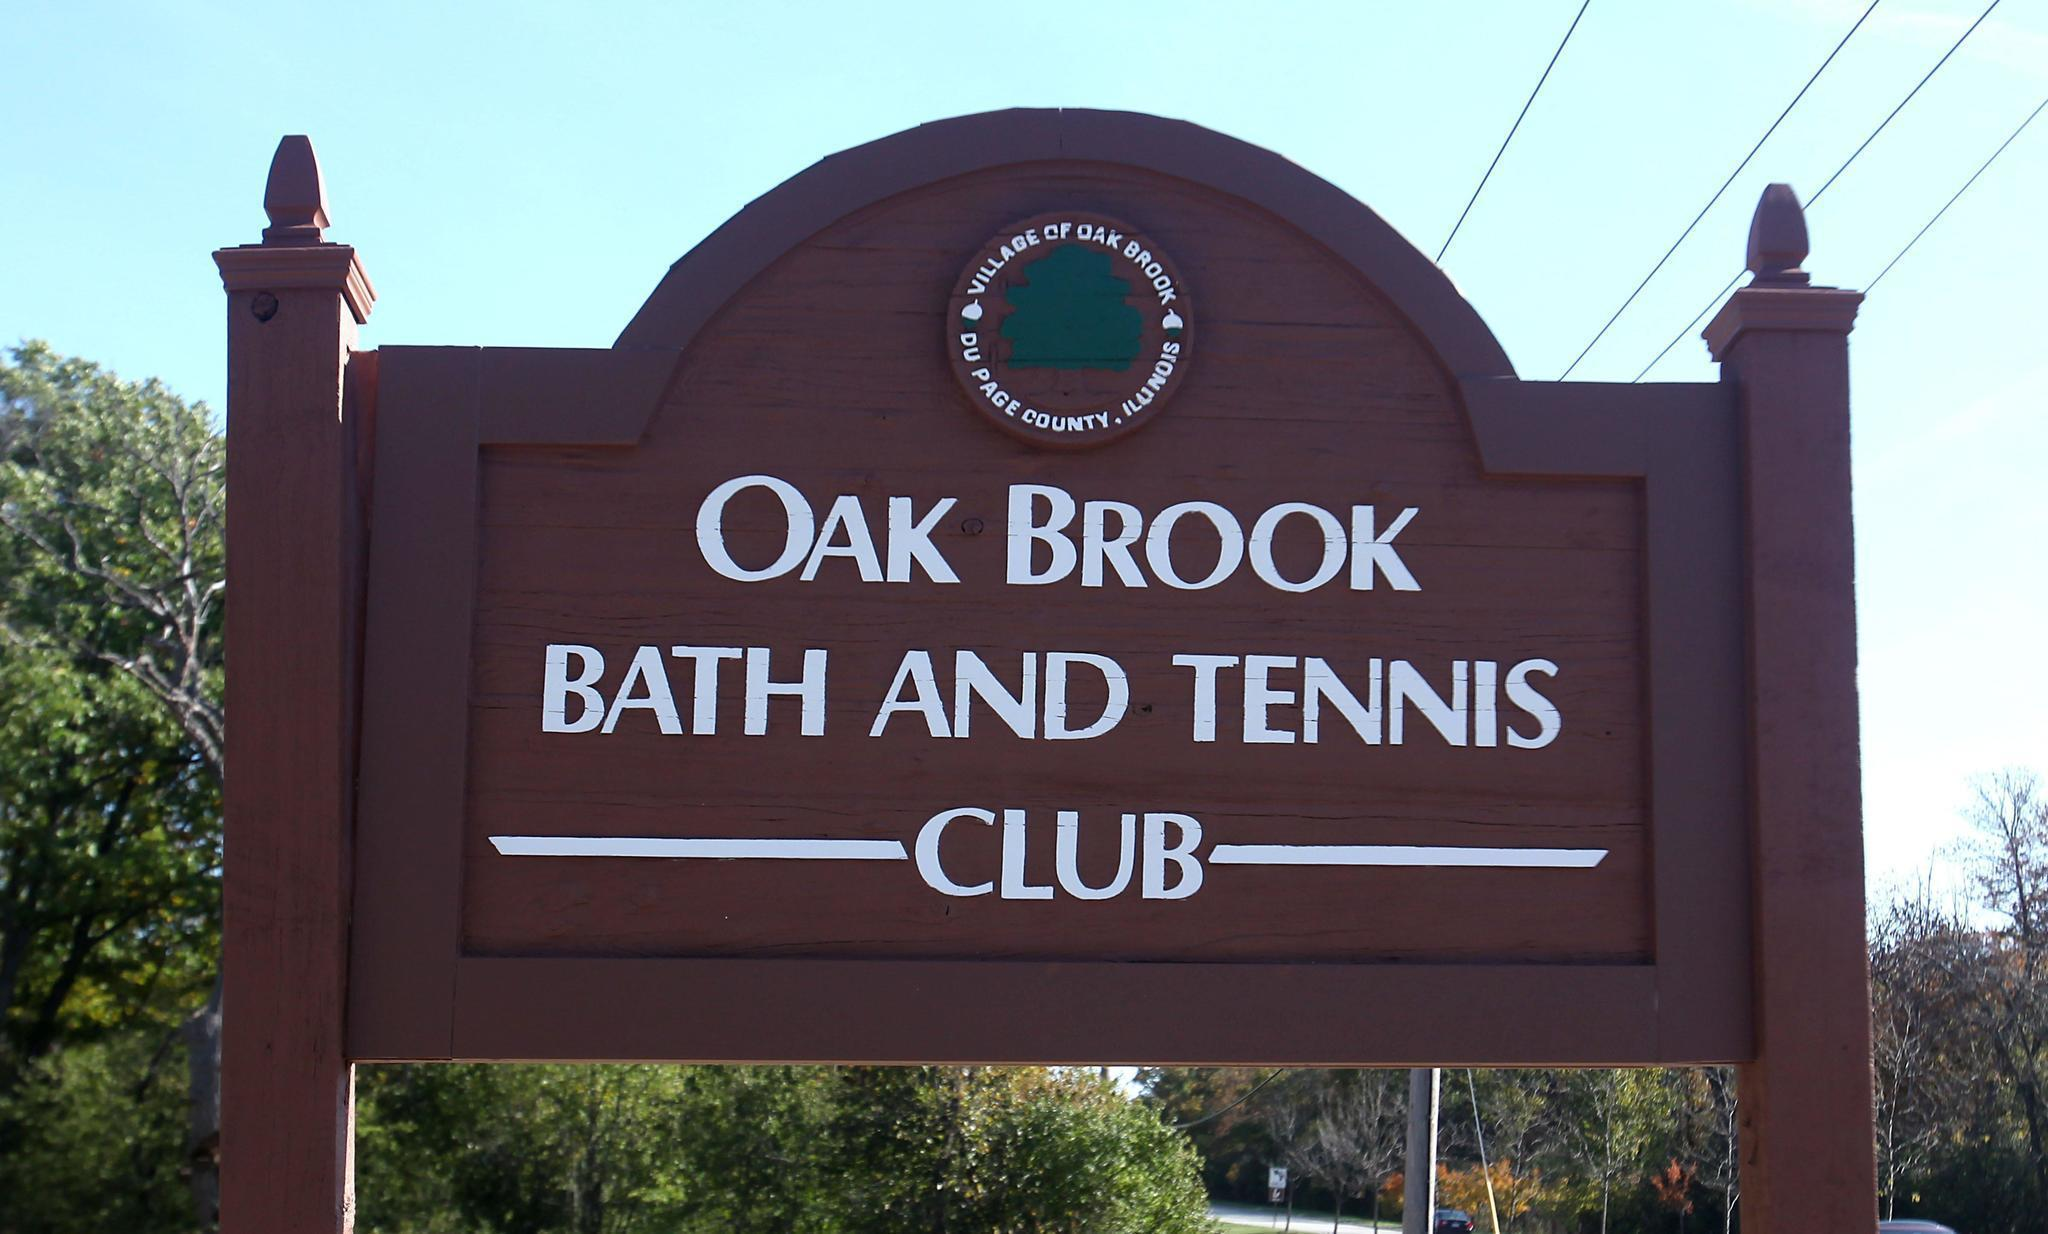 Oak Brook Will Pay Park District 255 000 To Begin Managing Bath And Tennis Club Pool The